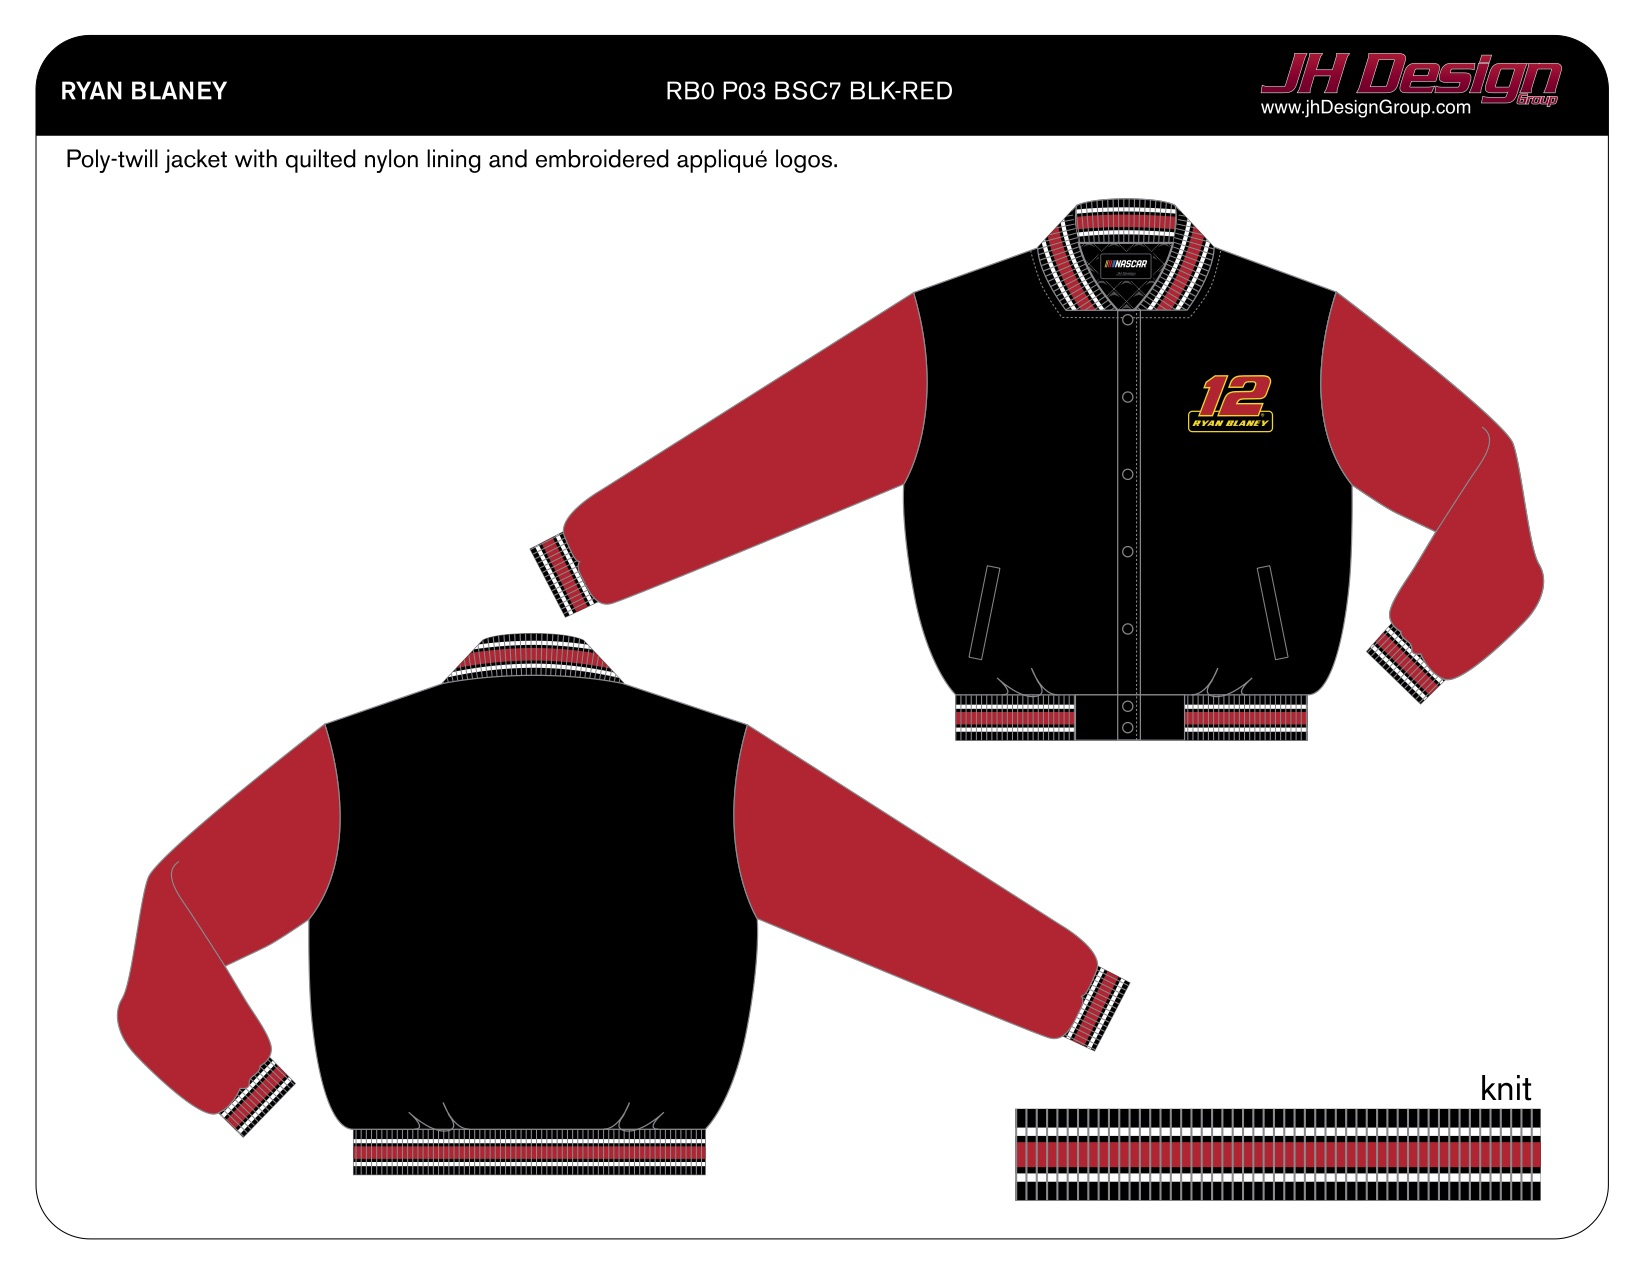 RB0 P03 BSC7 BLK-RED